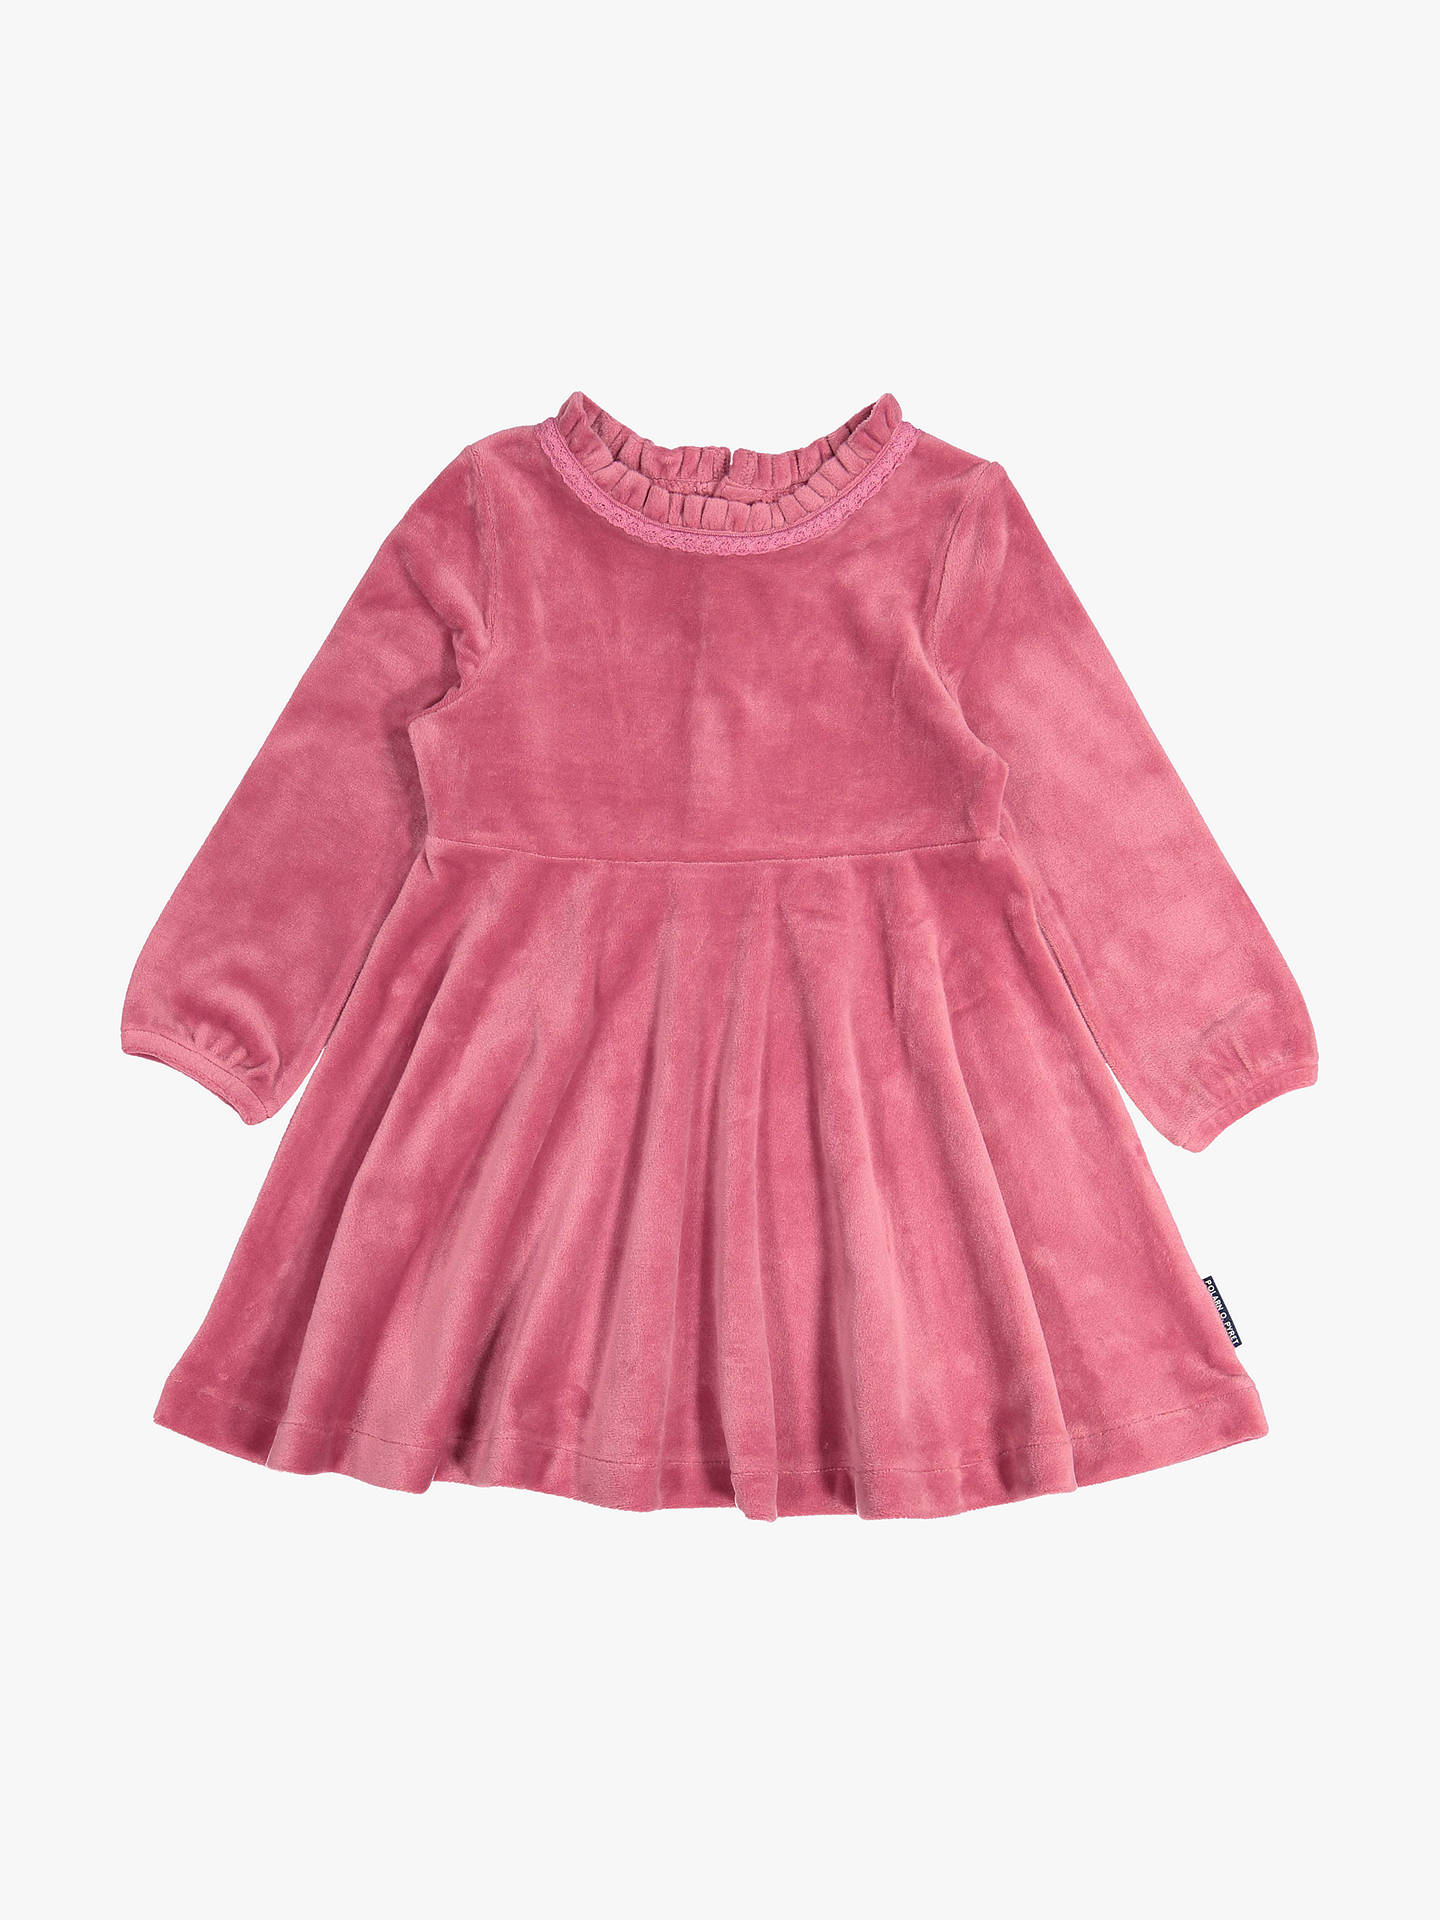 BuyPolarn O. Pyret Baby Velour Dress, Pink, 6-9 months Online at johnlewis.com